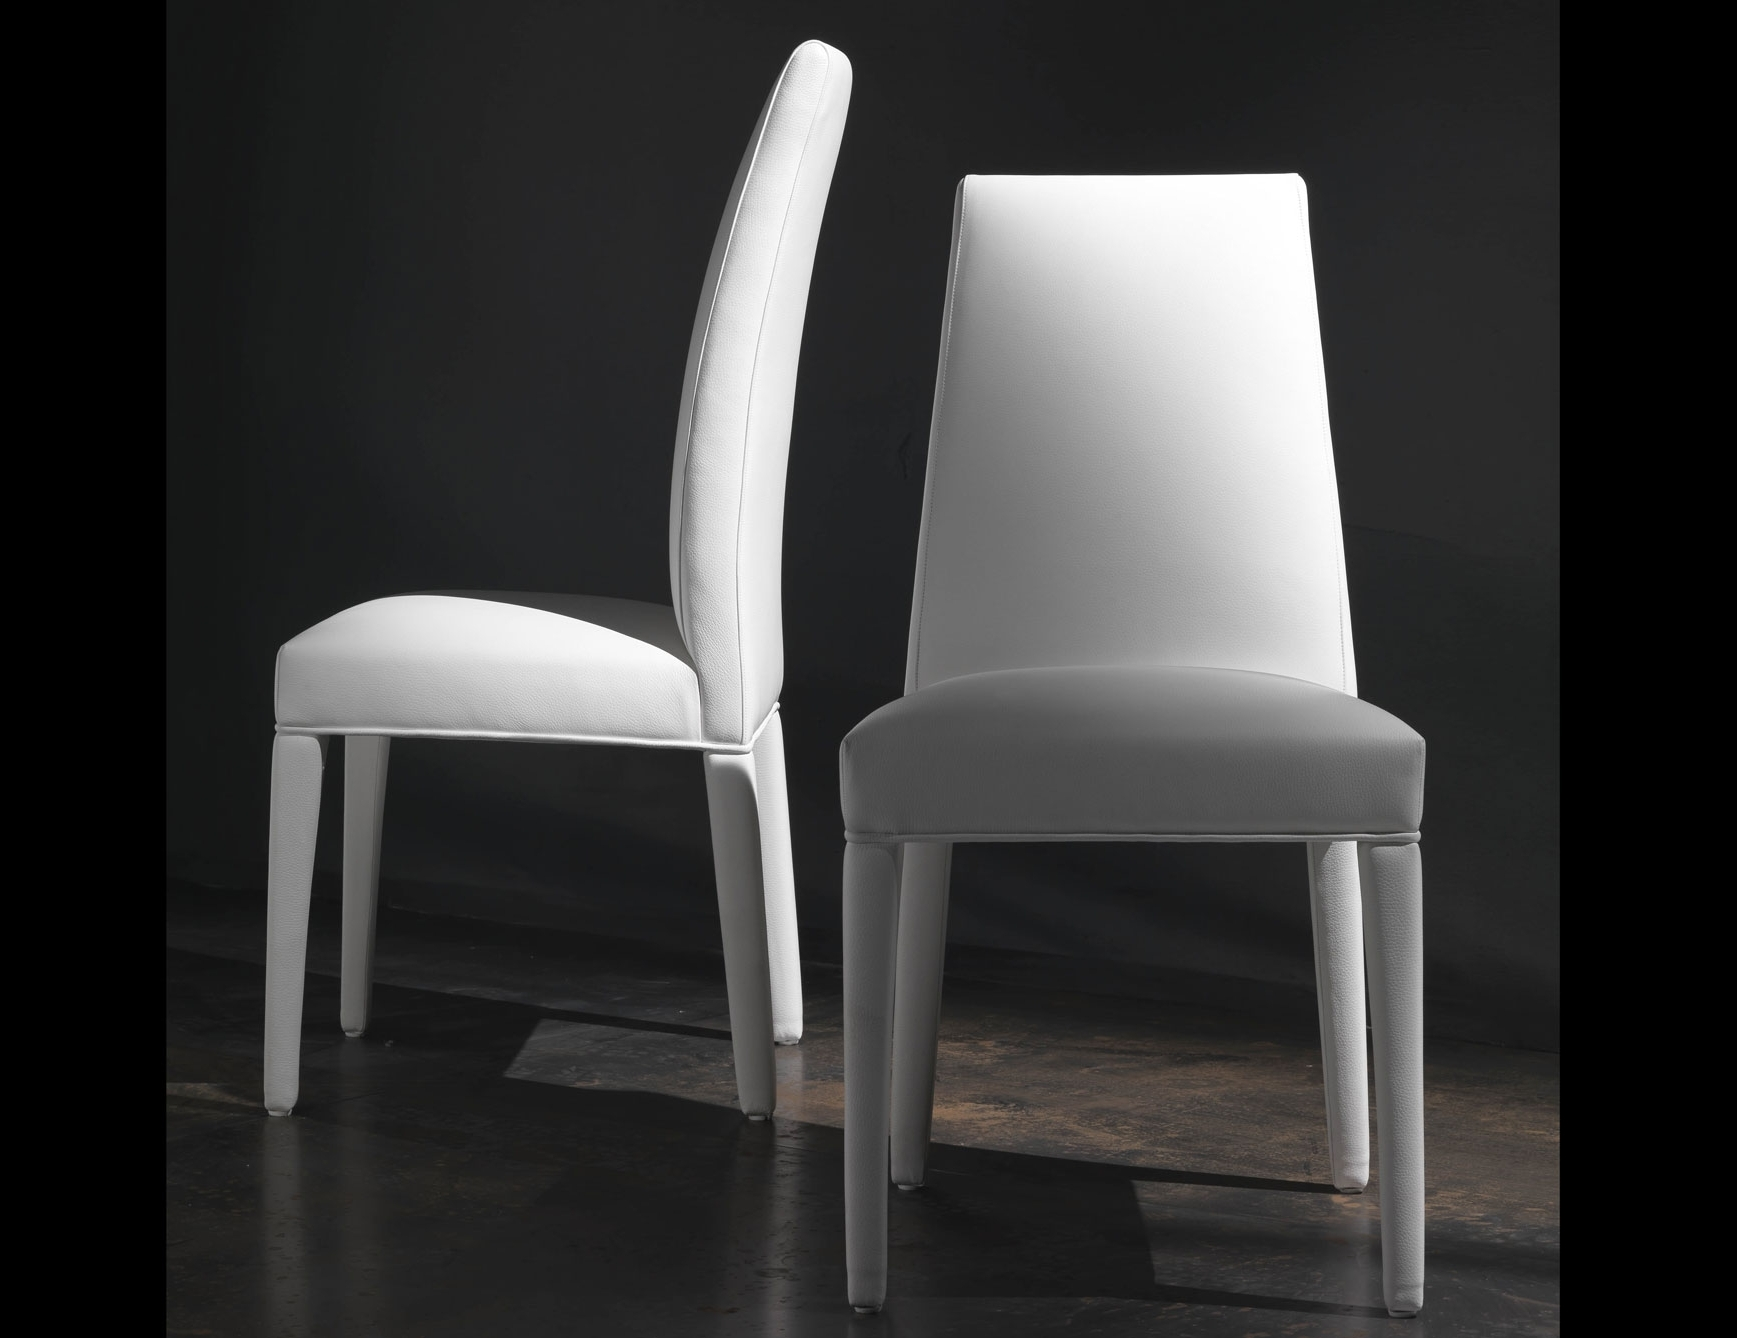 Nella Vetrina Dudu Dud00 Italian Designer White Leather Dining Chair Inside Best And Newest White Leather Dining Chairs (Gallery 6 of 25)